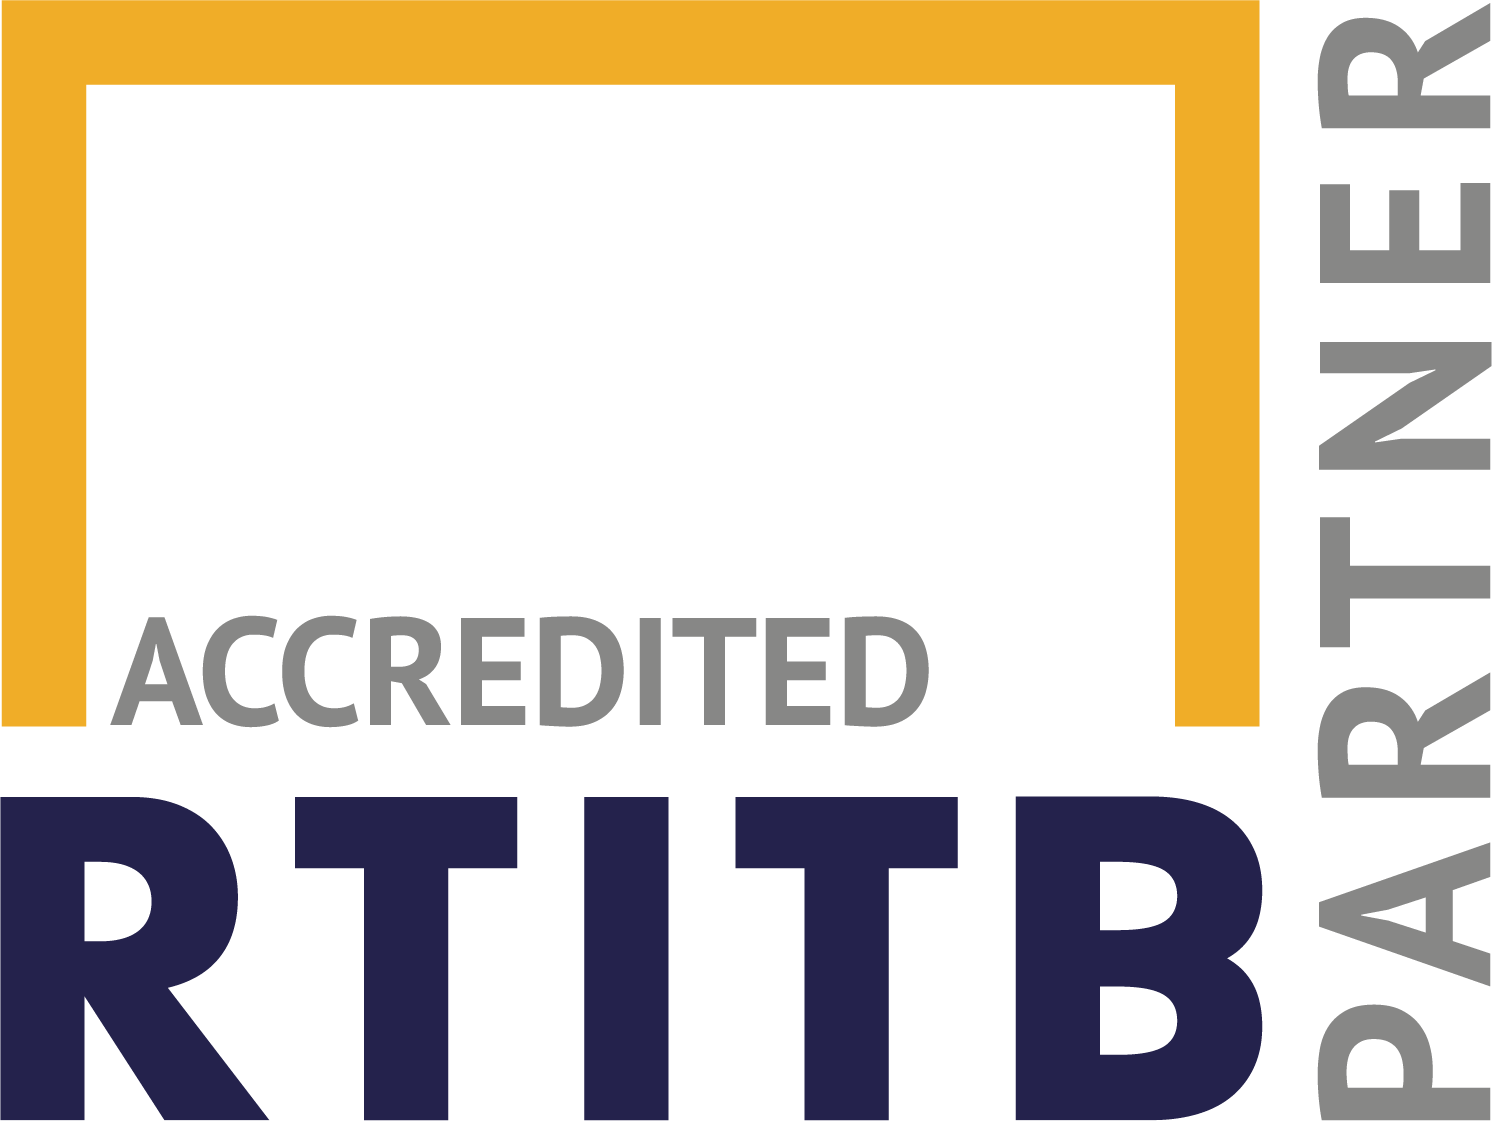 Accredited Partner-2019_Standard png